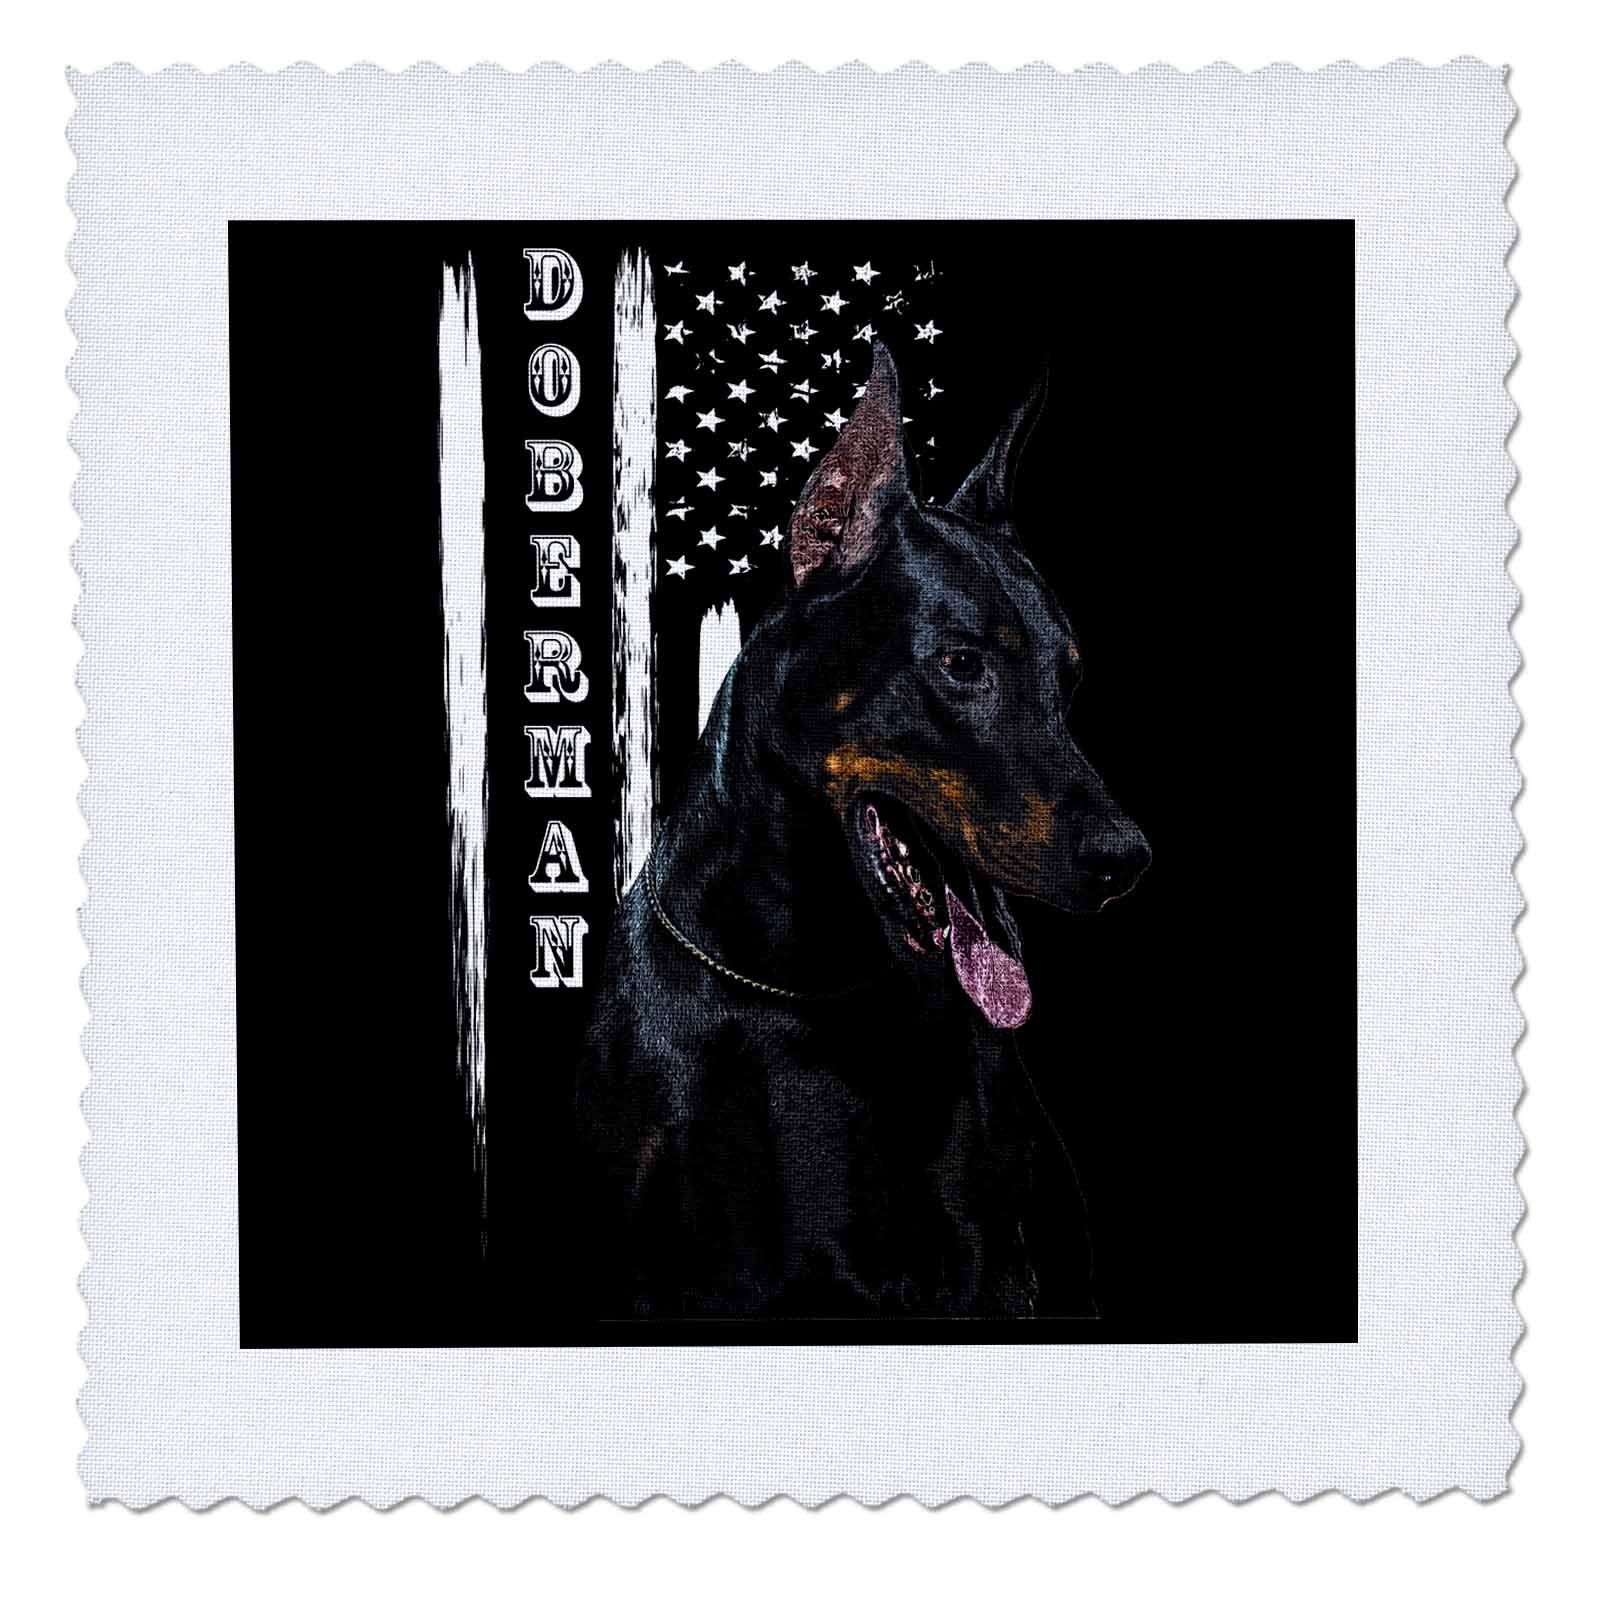 3dRose Sven Herkenrath Animal - A Trendy Dobermann on Black Background Black And White American Flag - 16x16 inch quilt square (qs_280395_6)